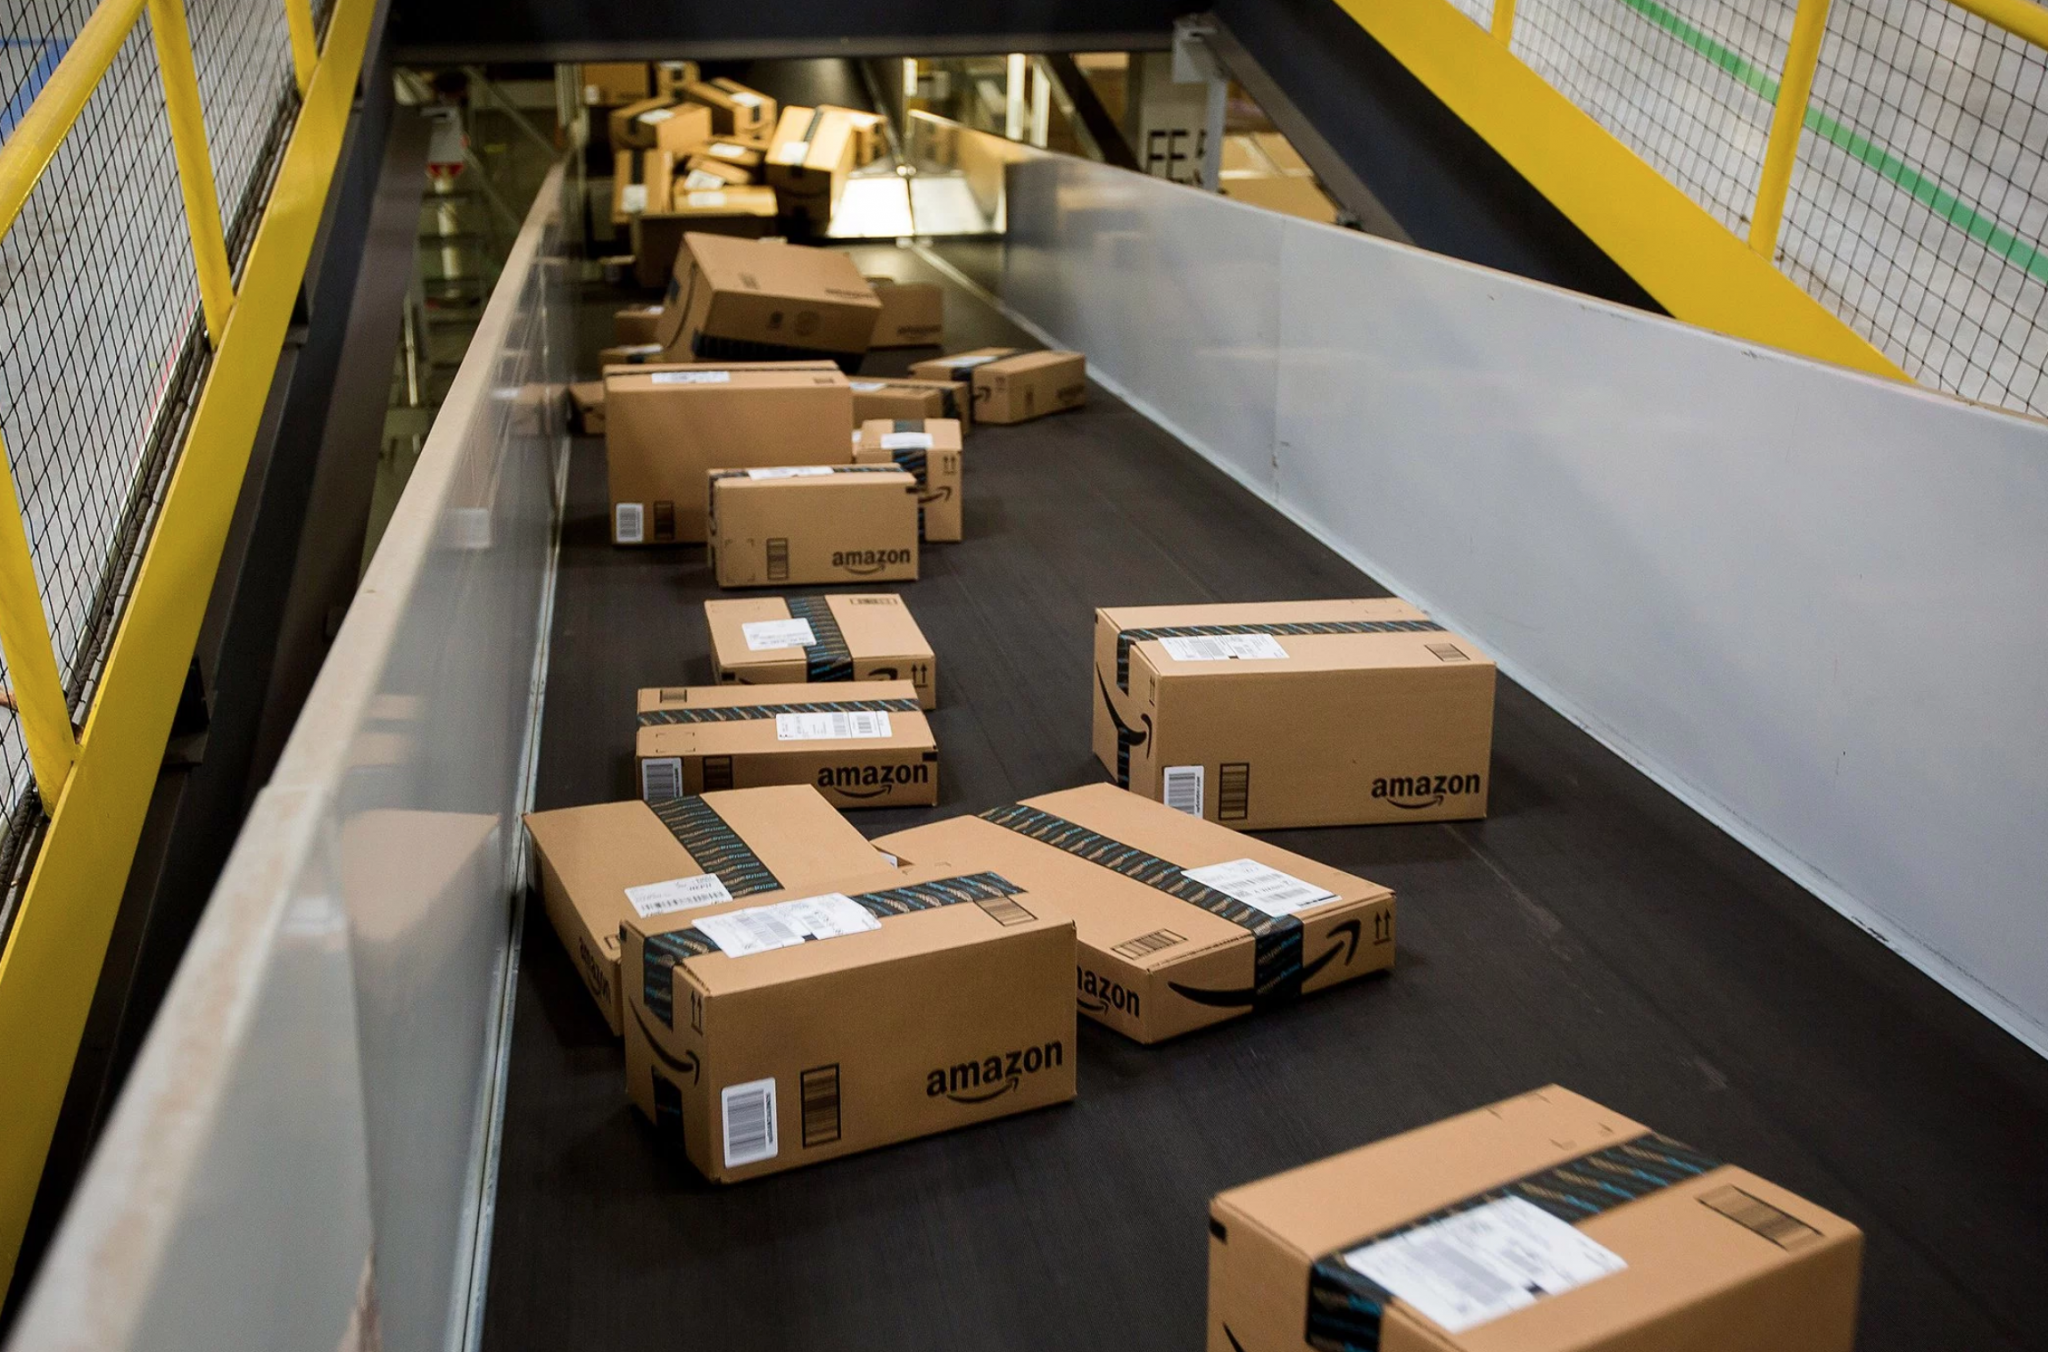 Conveyor belt with Amazon boxes rolling down it